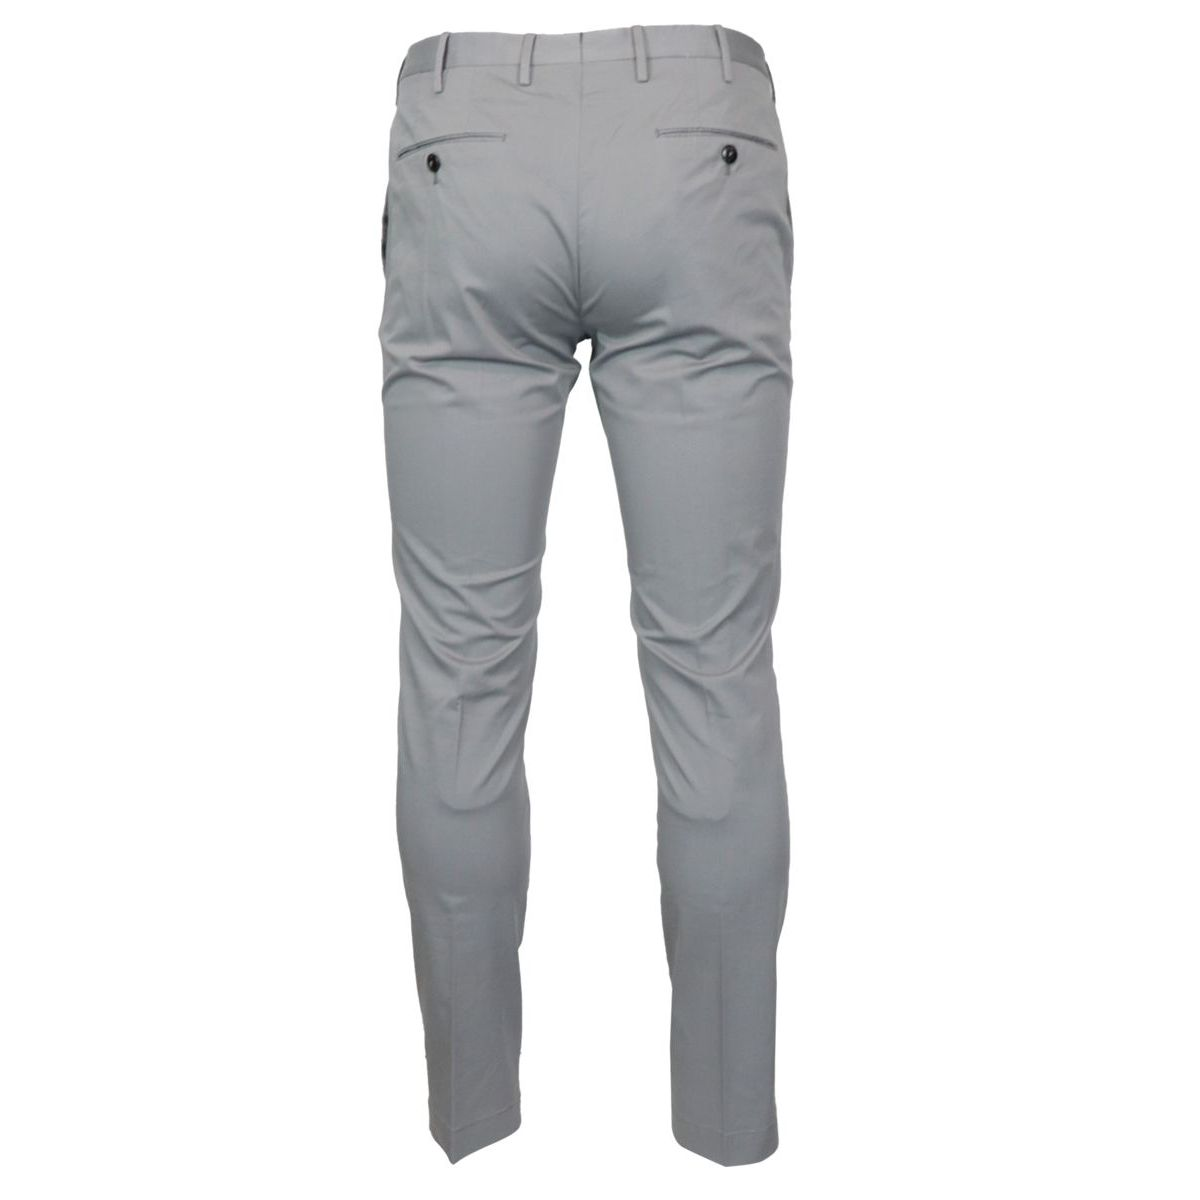 Solid color stretch cotton skinny trousers Grey PT TORINO